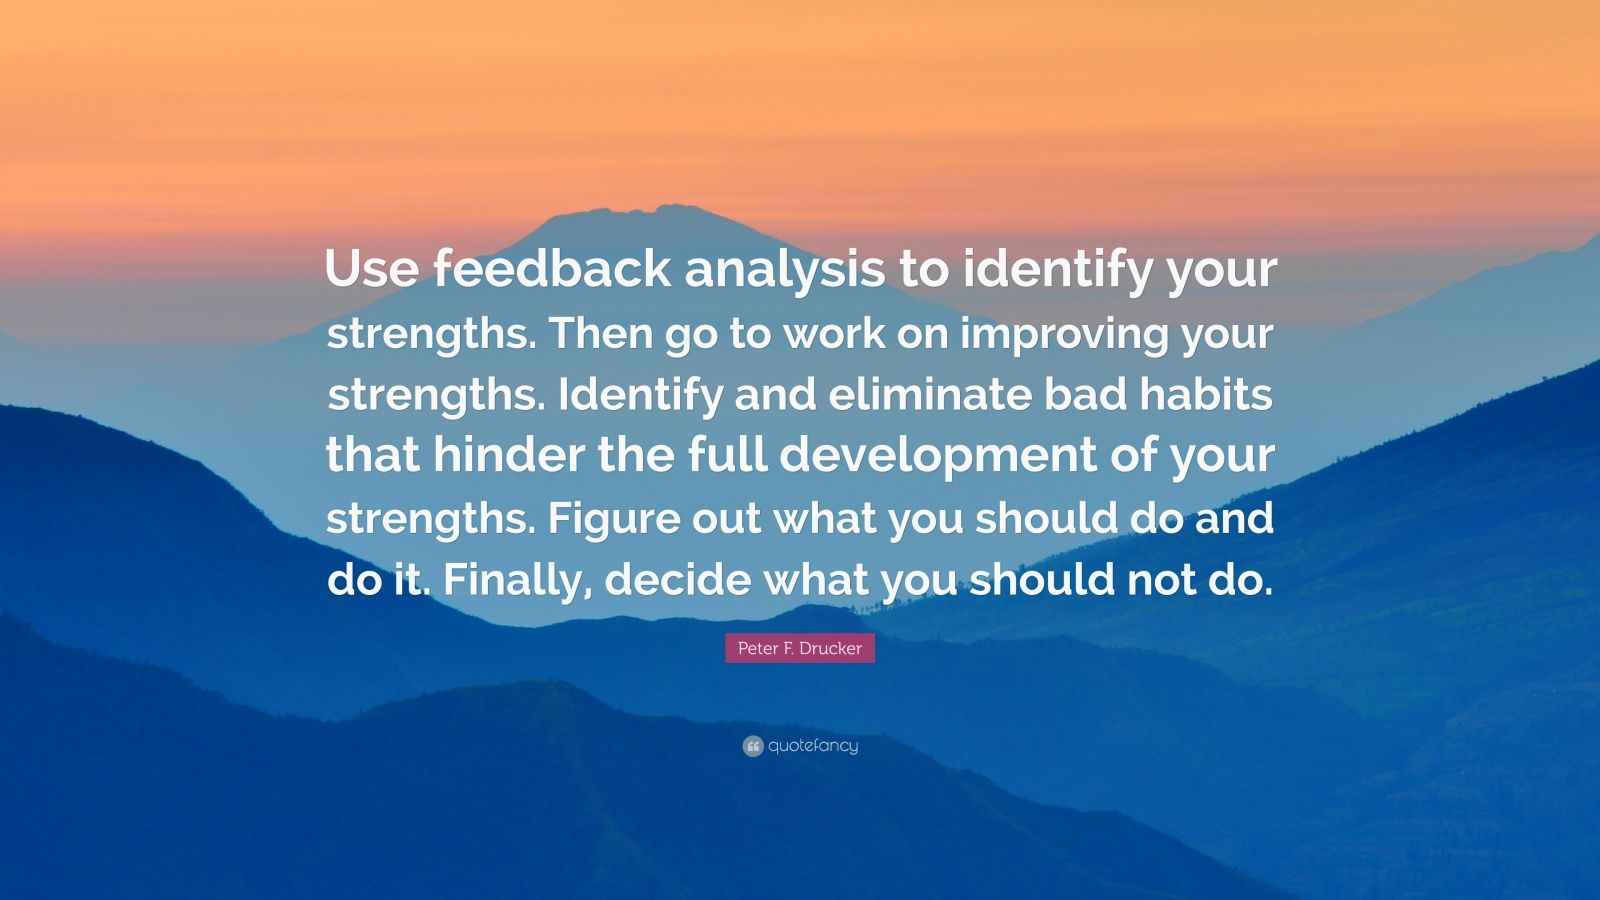 "Peter F. Drucker Quote: ""Use feedback analysis to identify your strengths. Then go to work on improving your strengths. Identify and eliminate bad habits that hinder the full development of your strengths. Figure out what you should do and do it. Finally, decide what you should not do."""